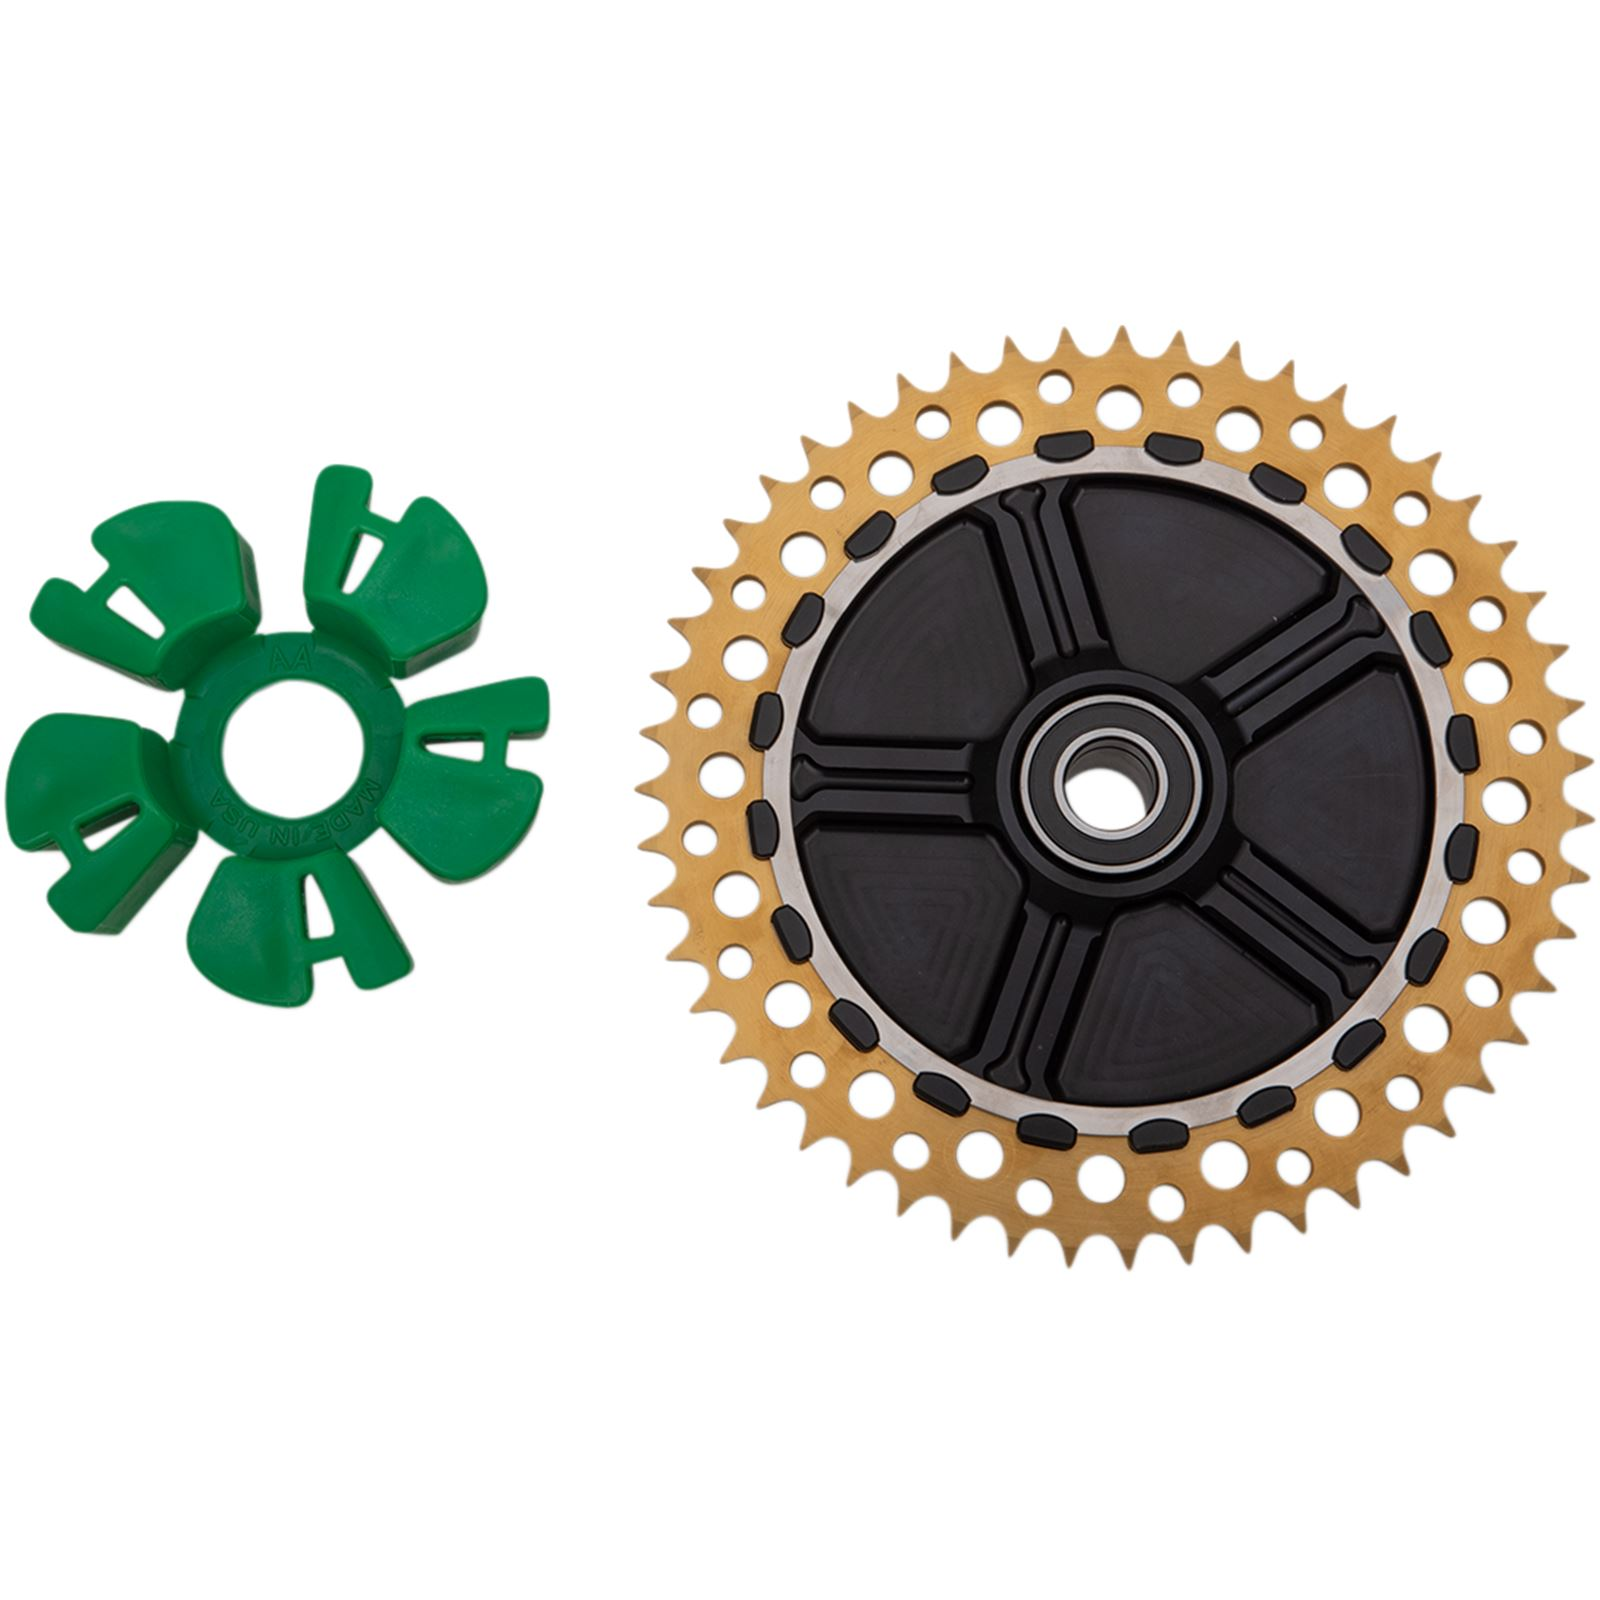 Alloy Art Cush Drive Sprocket - Gold - Anodized - 49-Tooth